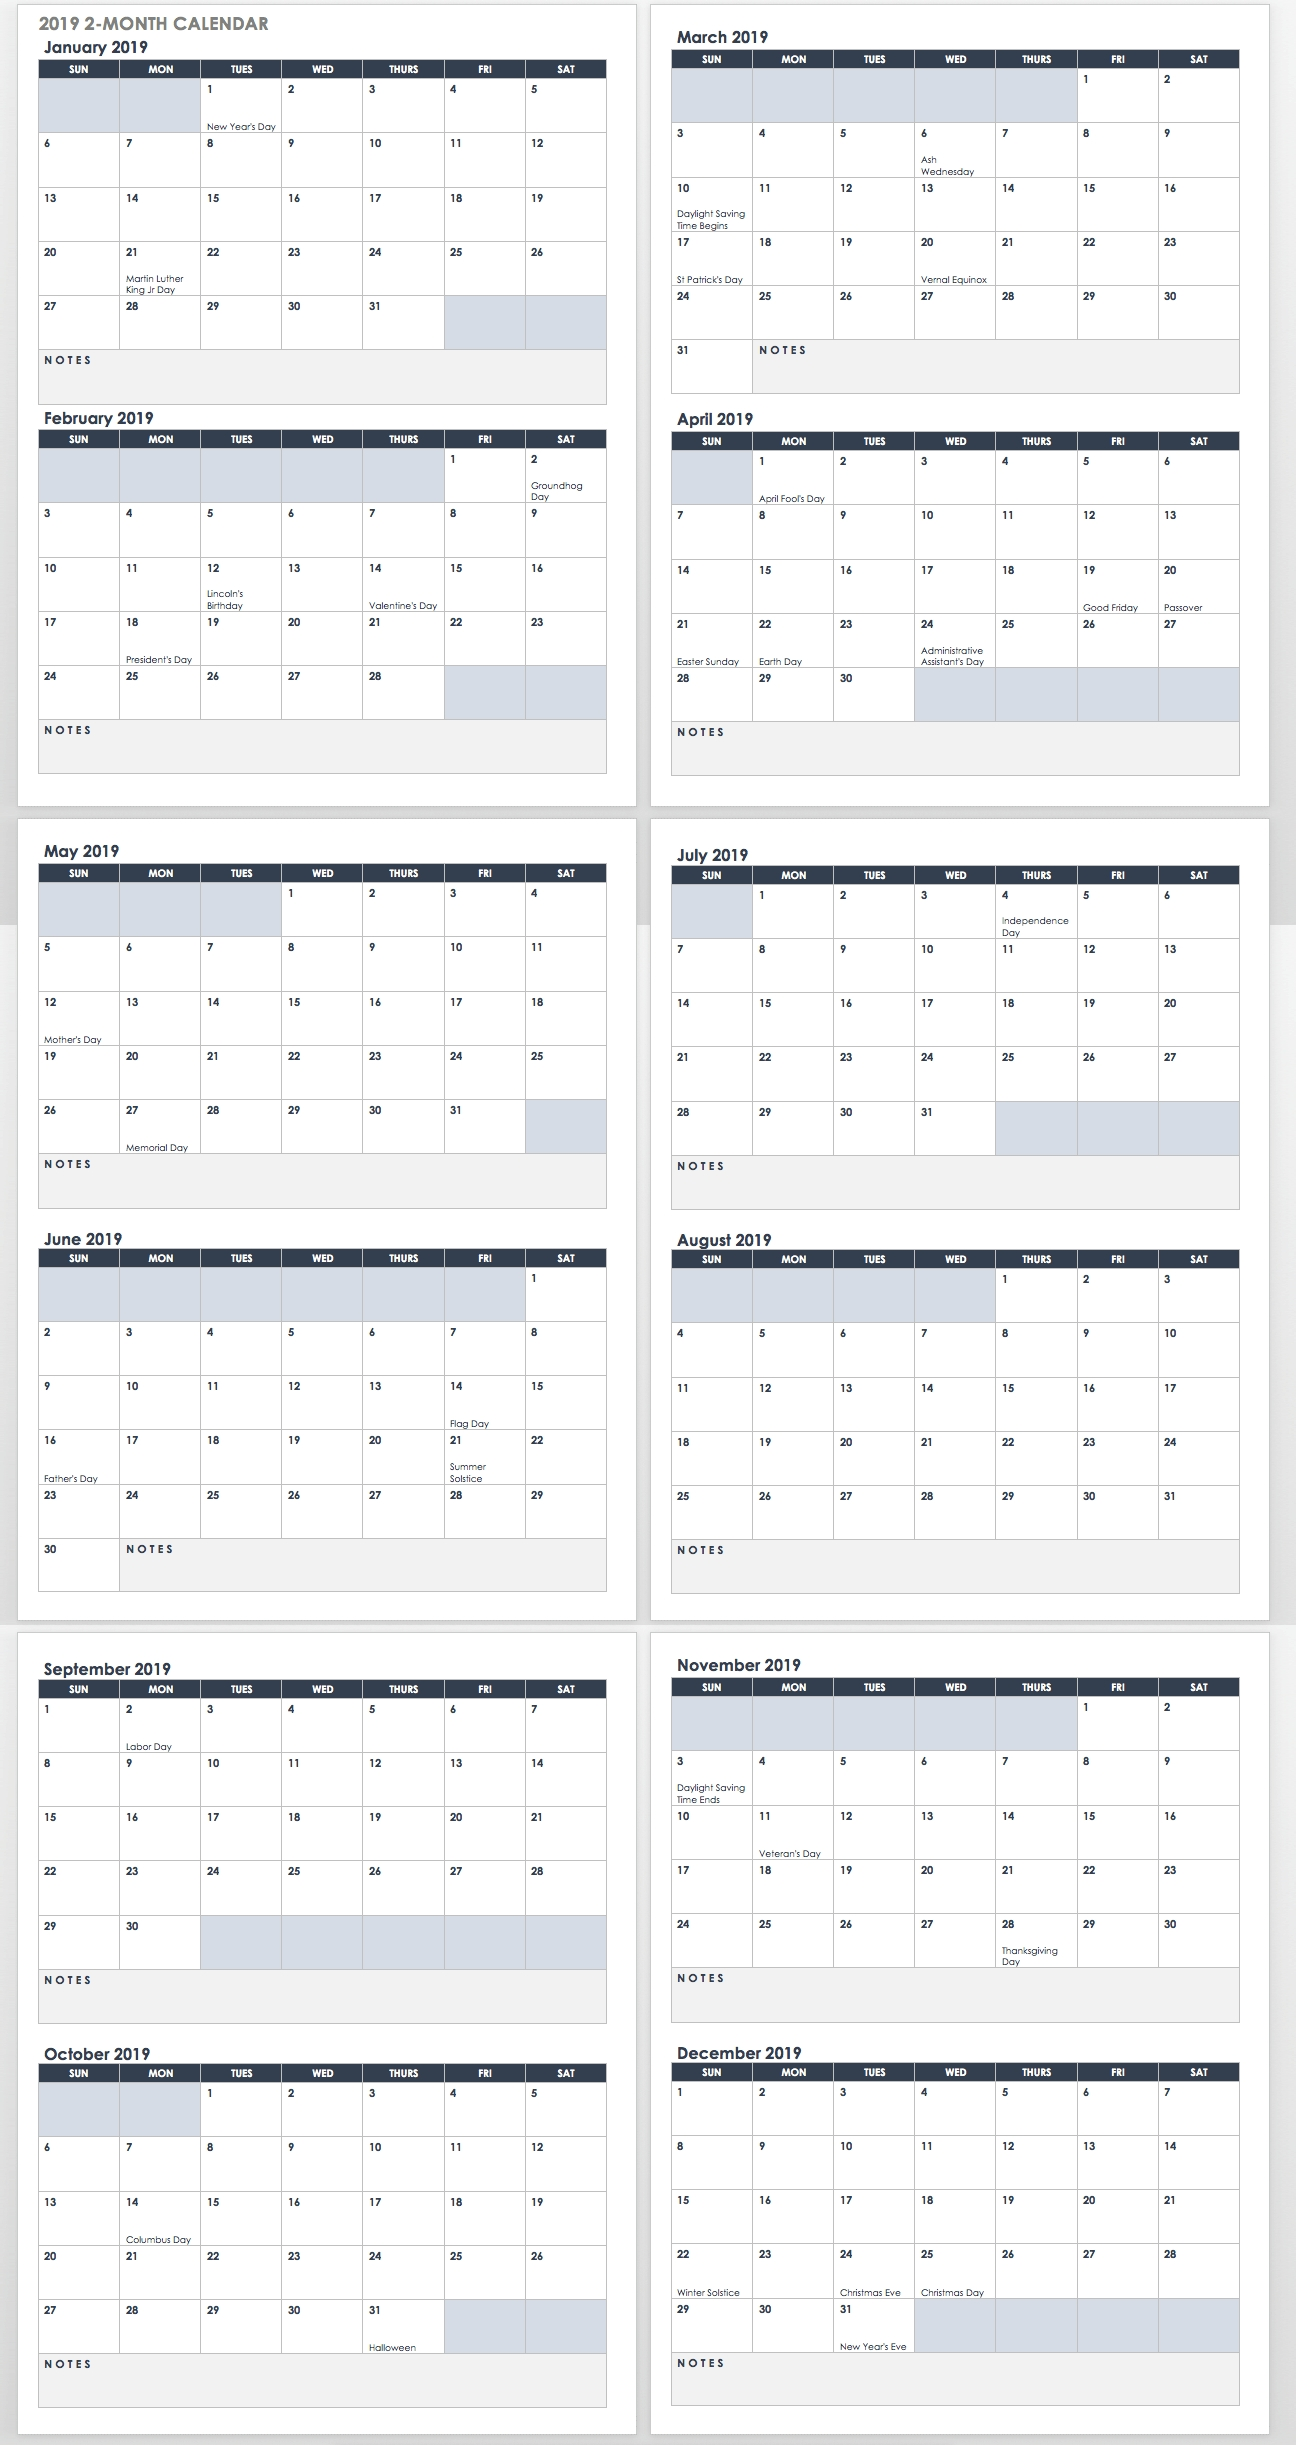 15 Free Monthly Calendar Templates | Smartsheet  2020 Calendar With Open Squares